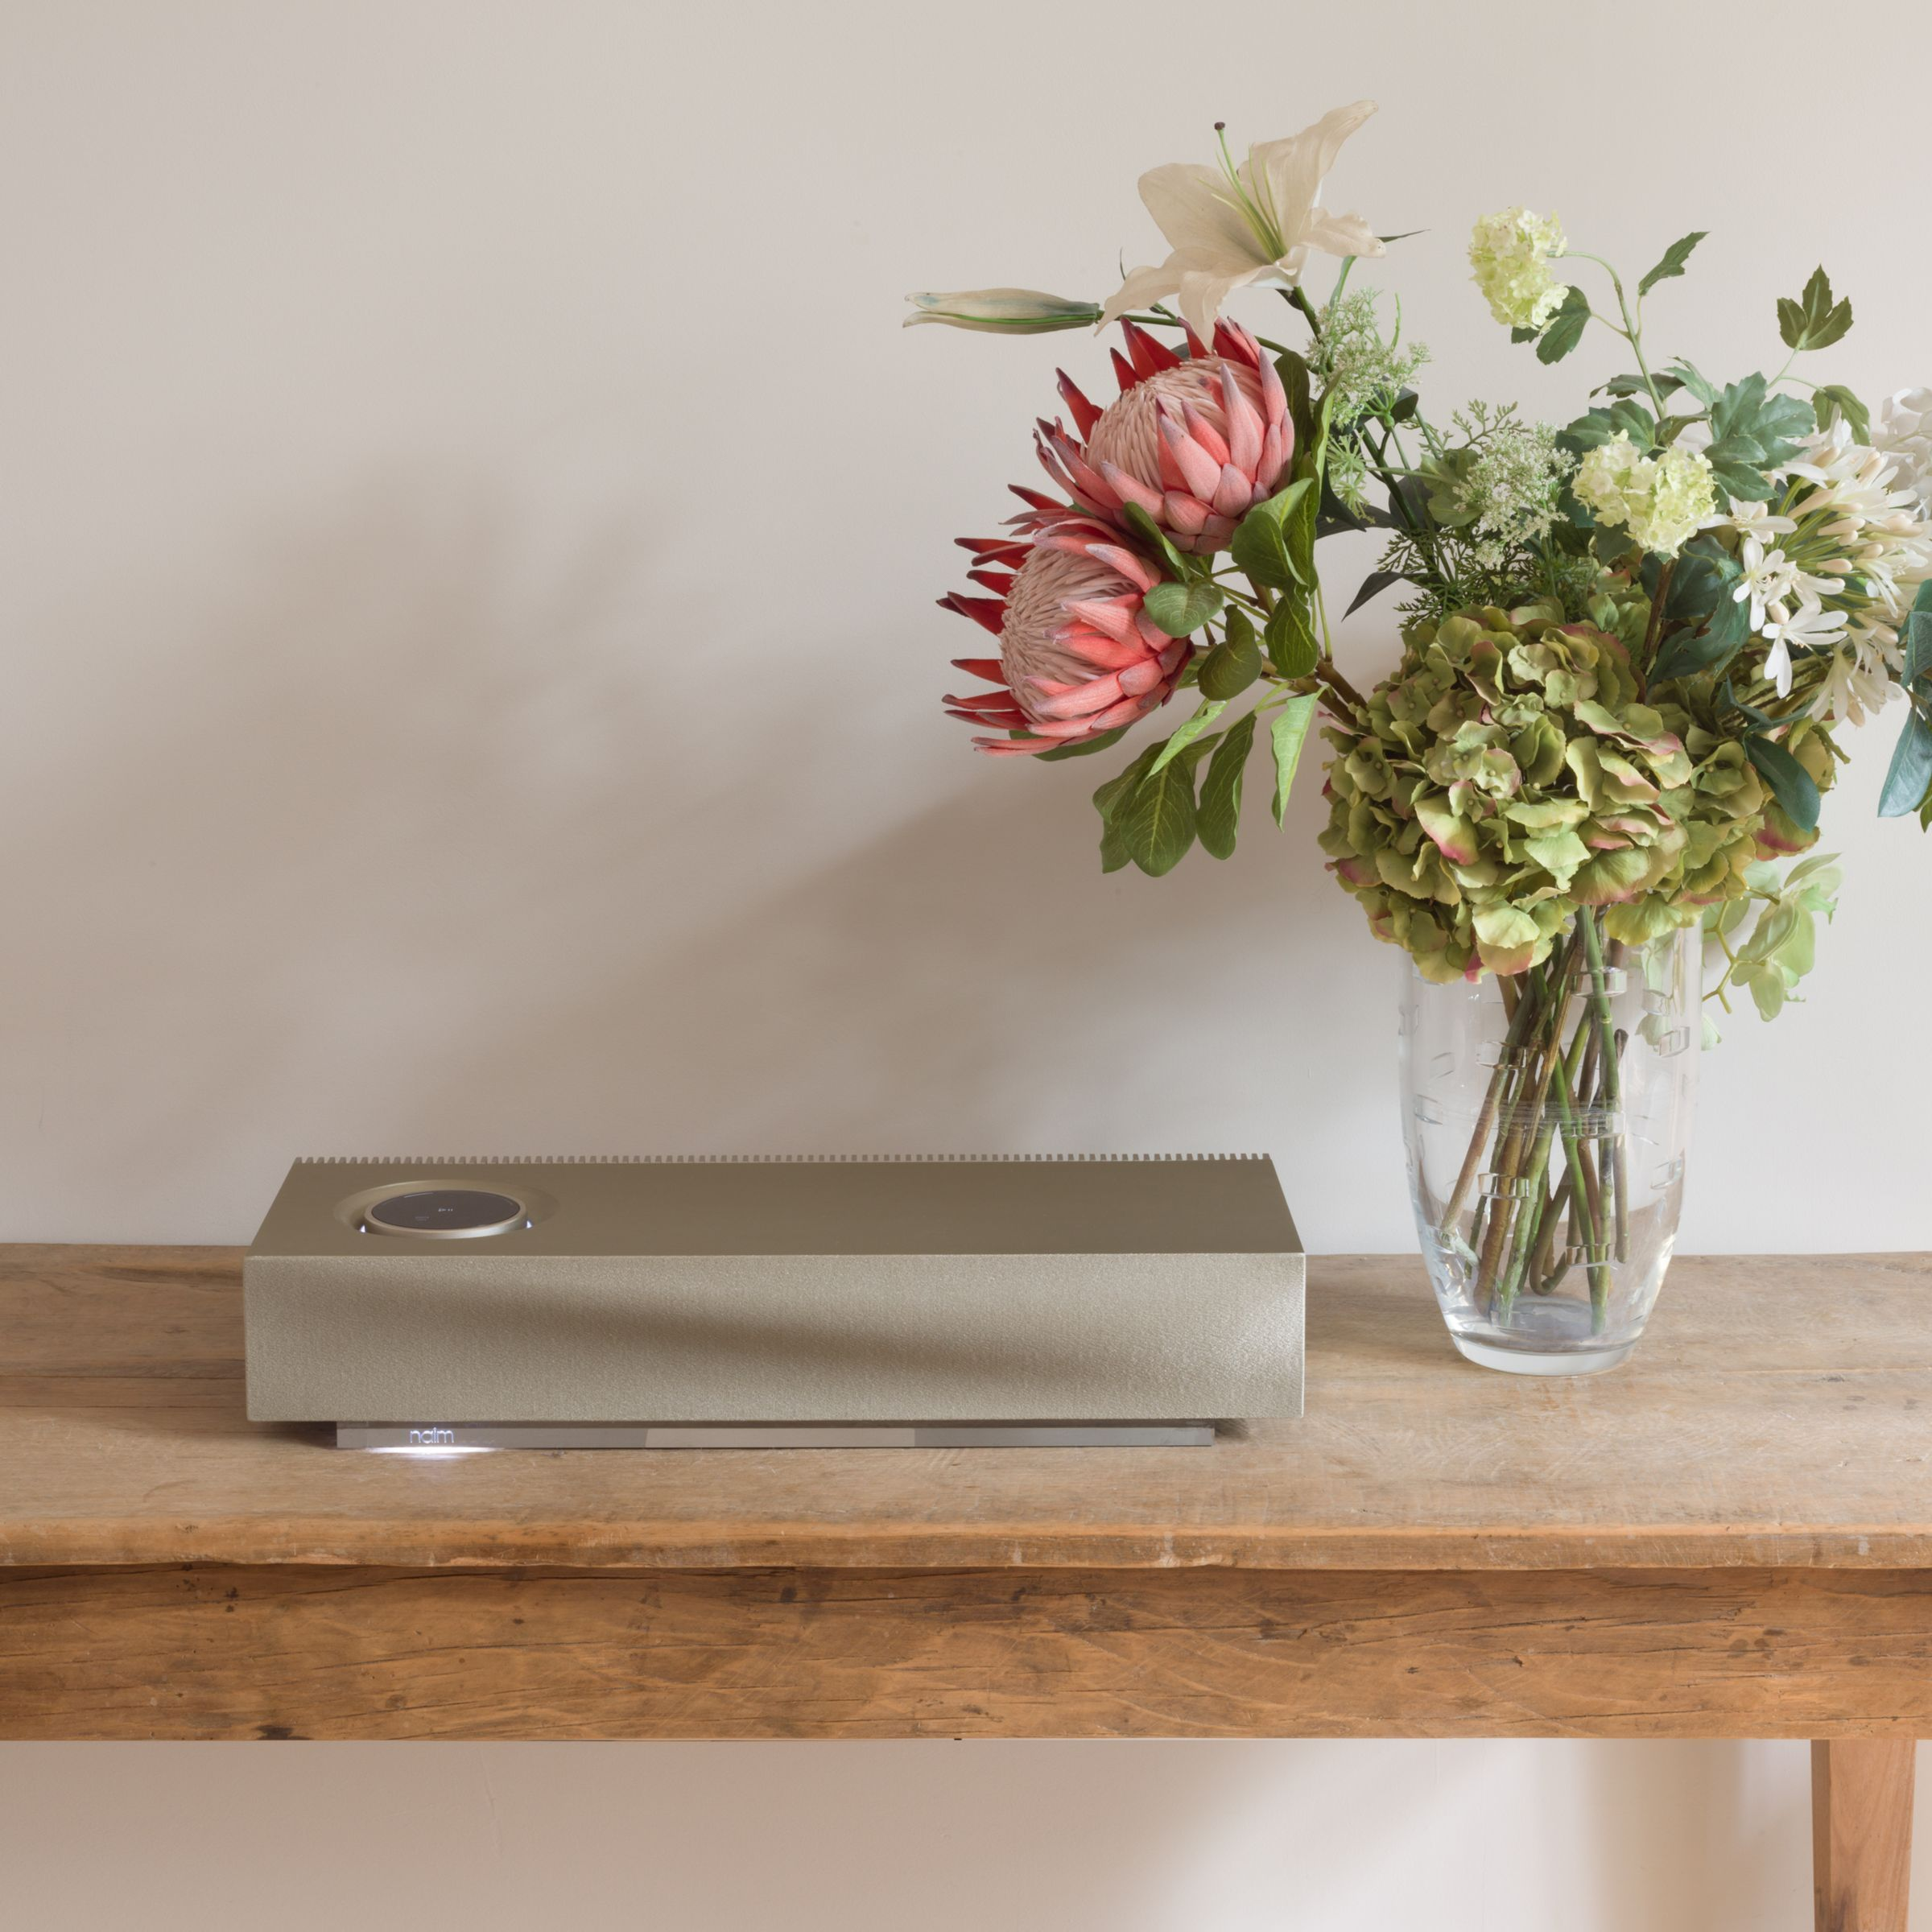 Naim Audio Mu-so Wireless Bluetooth Music System with Apple AirPlay, Spotify Connect & TIDAL Compatibility, Special Edition #musicsystem